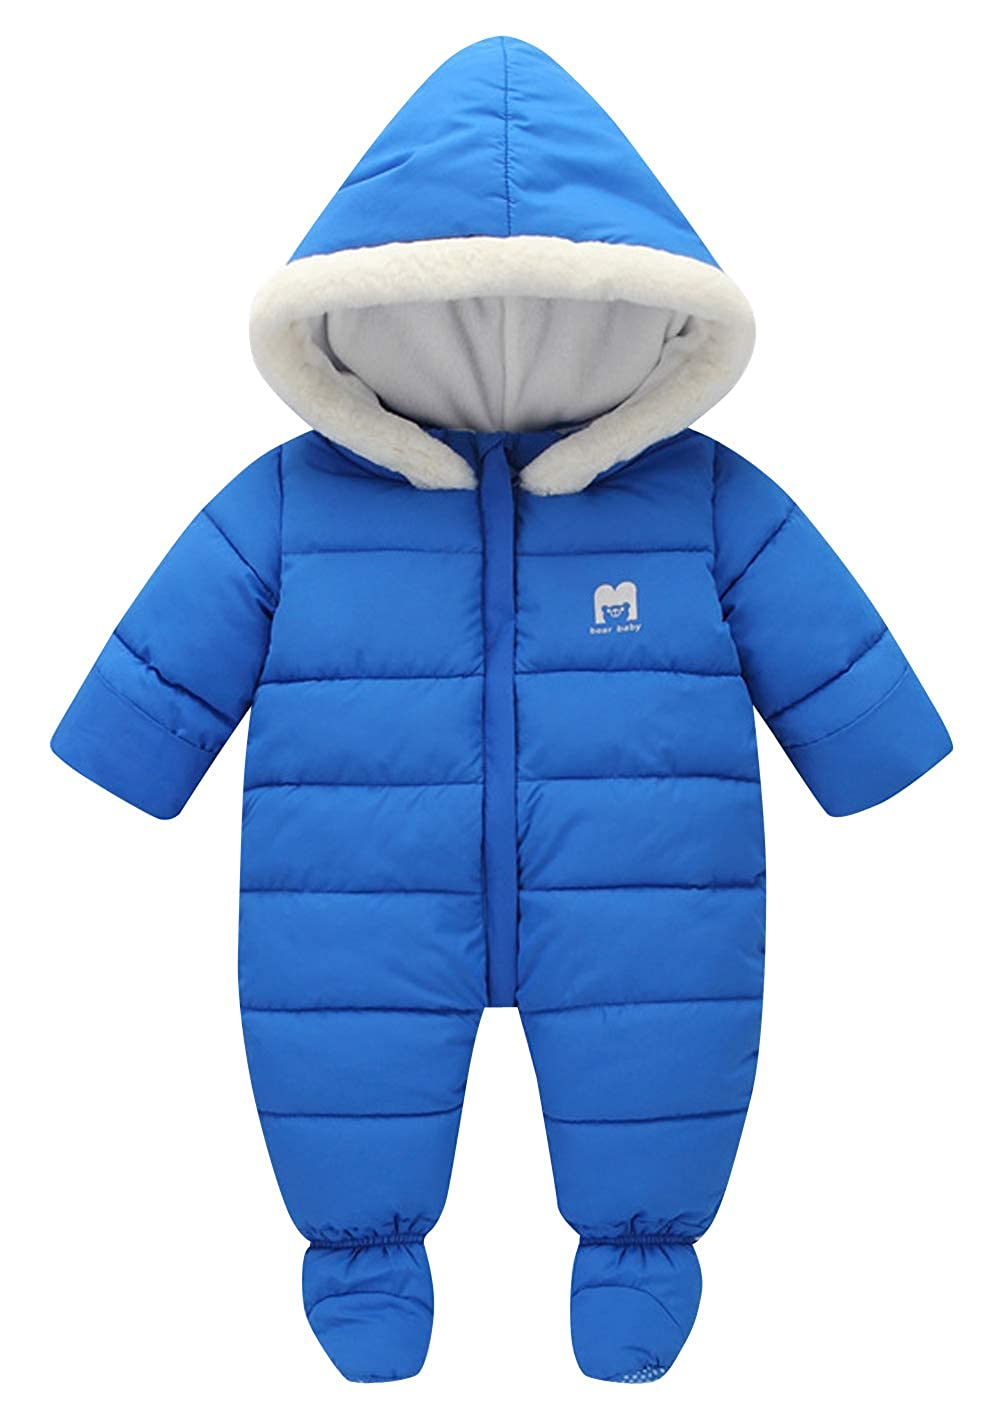 ee20ed79 Amazon.com: AIEOE Baby Hooded Fleece Romper Infant Thick Jumpsuit with Feet  Warm Snowsuit: Clothing